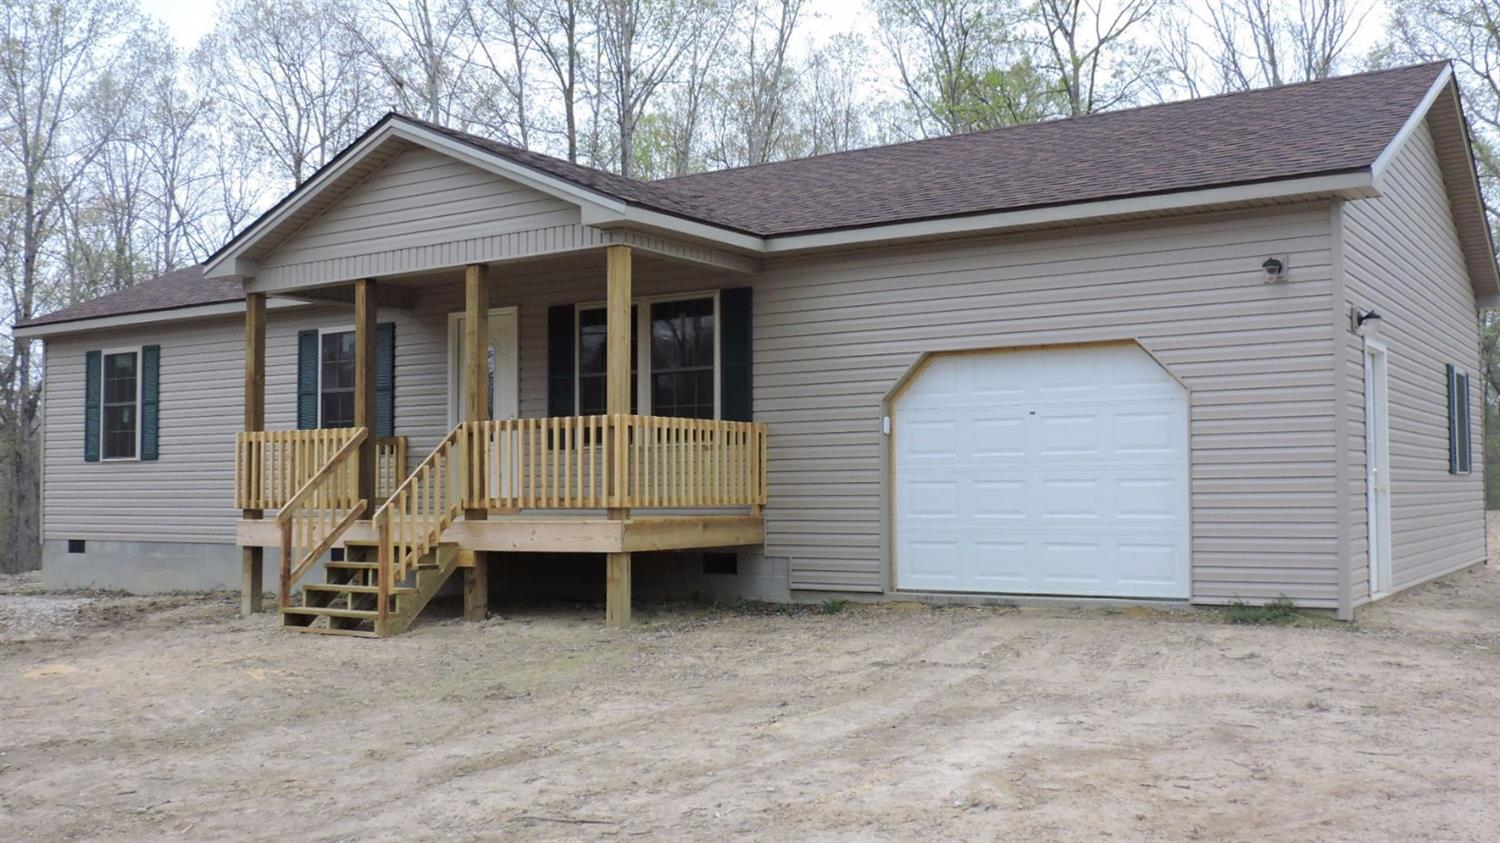 369 Pond Lick Road, Olympia, KY 40358